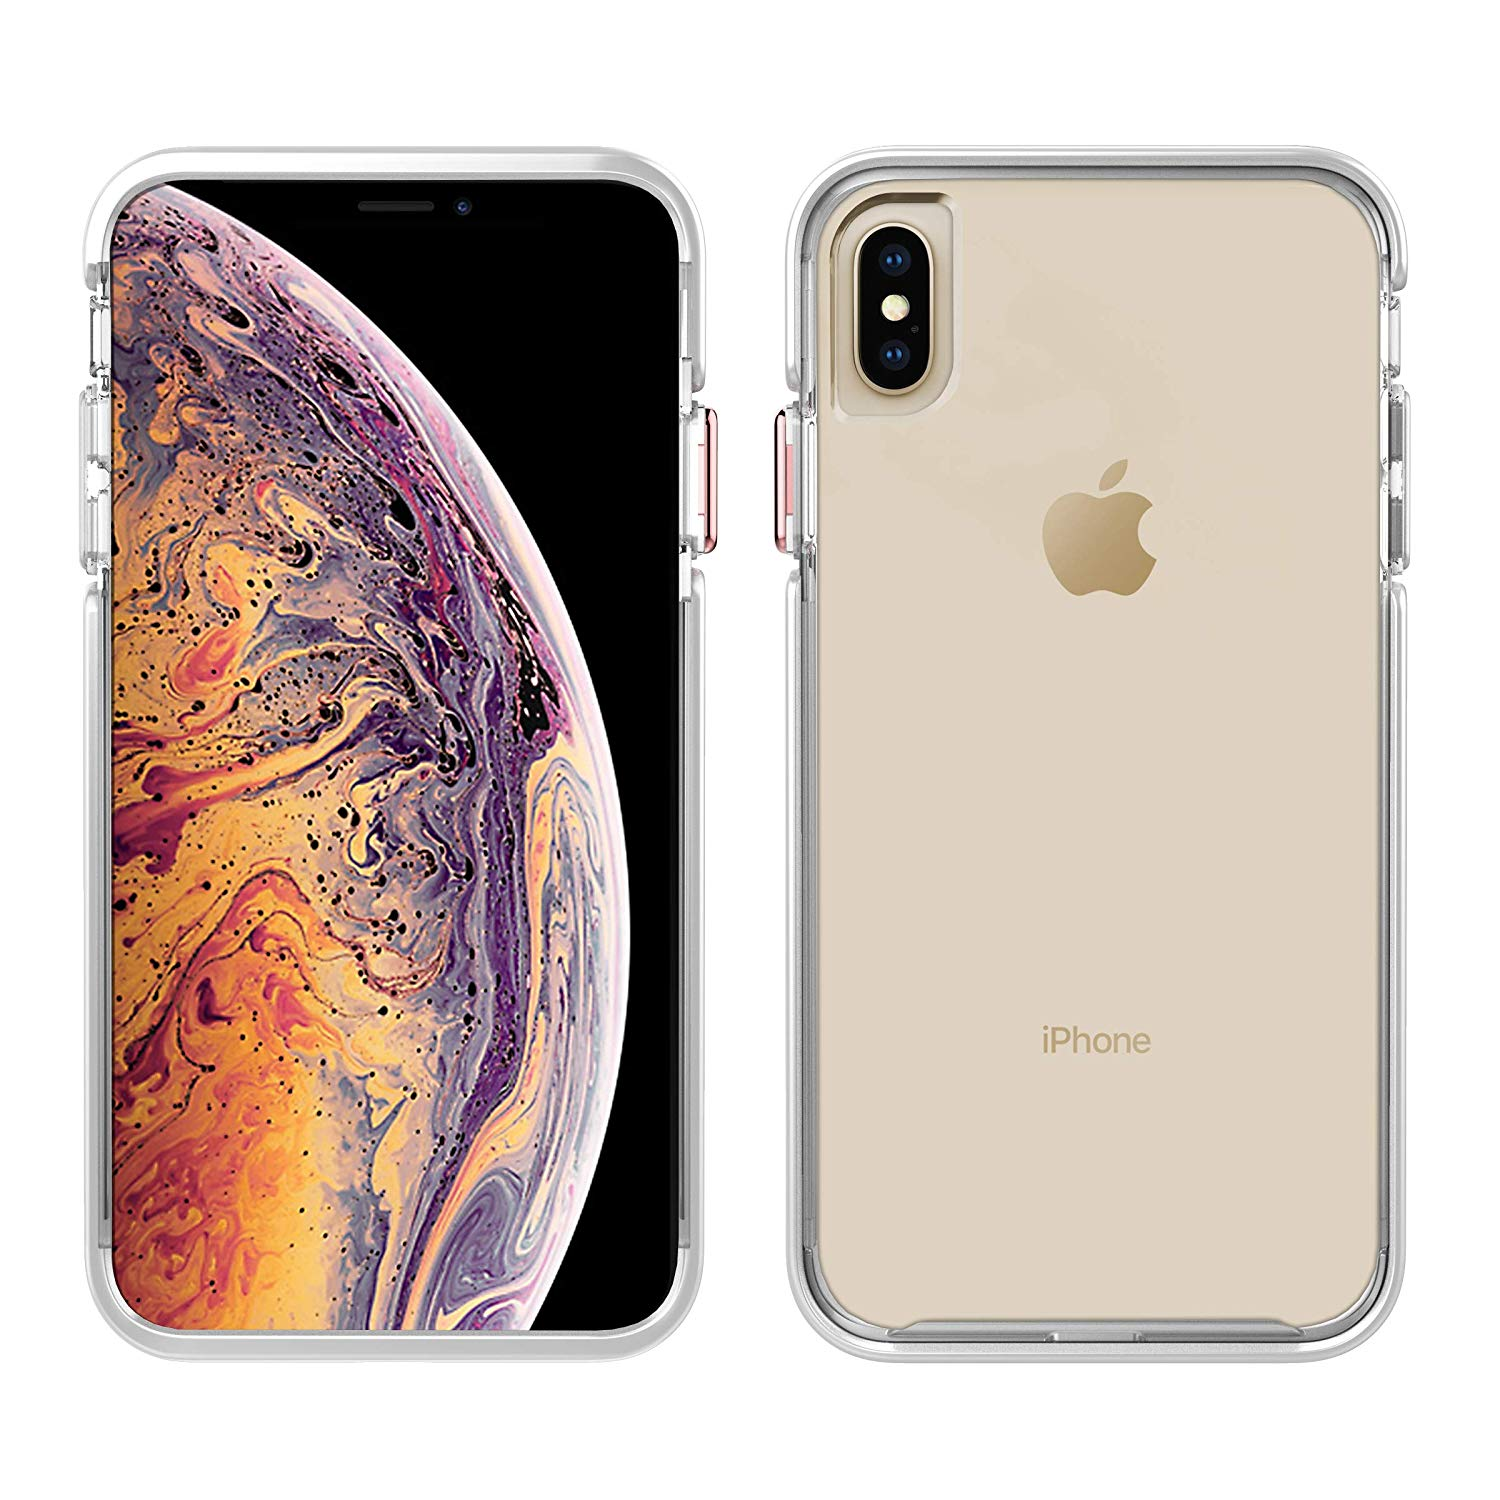 Pelican Ambassador Slim Stylish Case For Iphone Xs Max Clear White Rose Gold Walmart Com Walmart Com